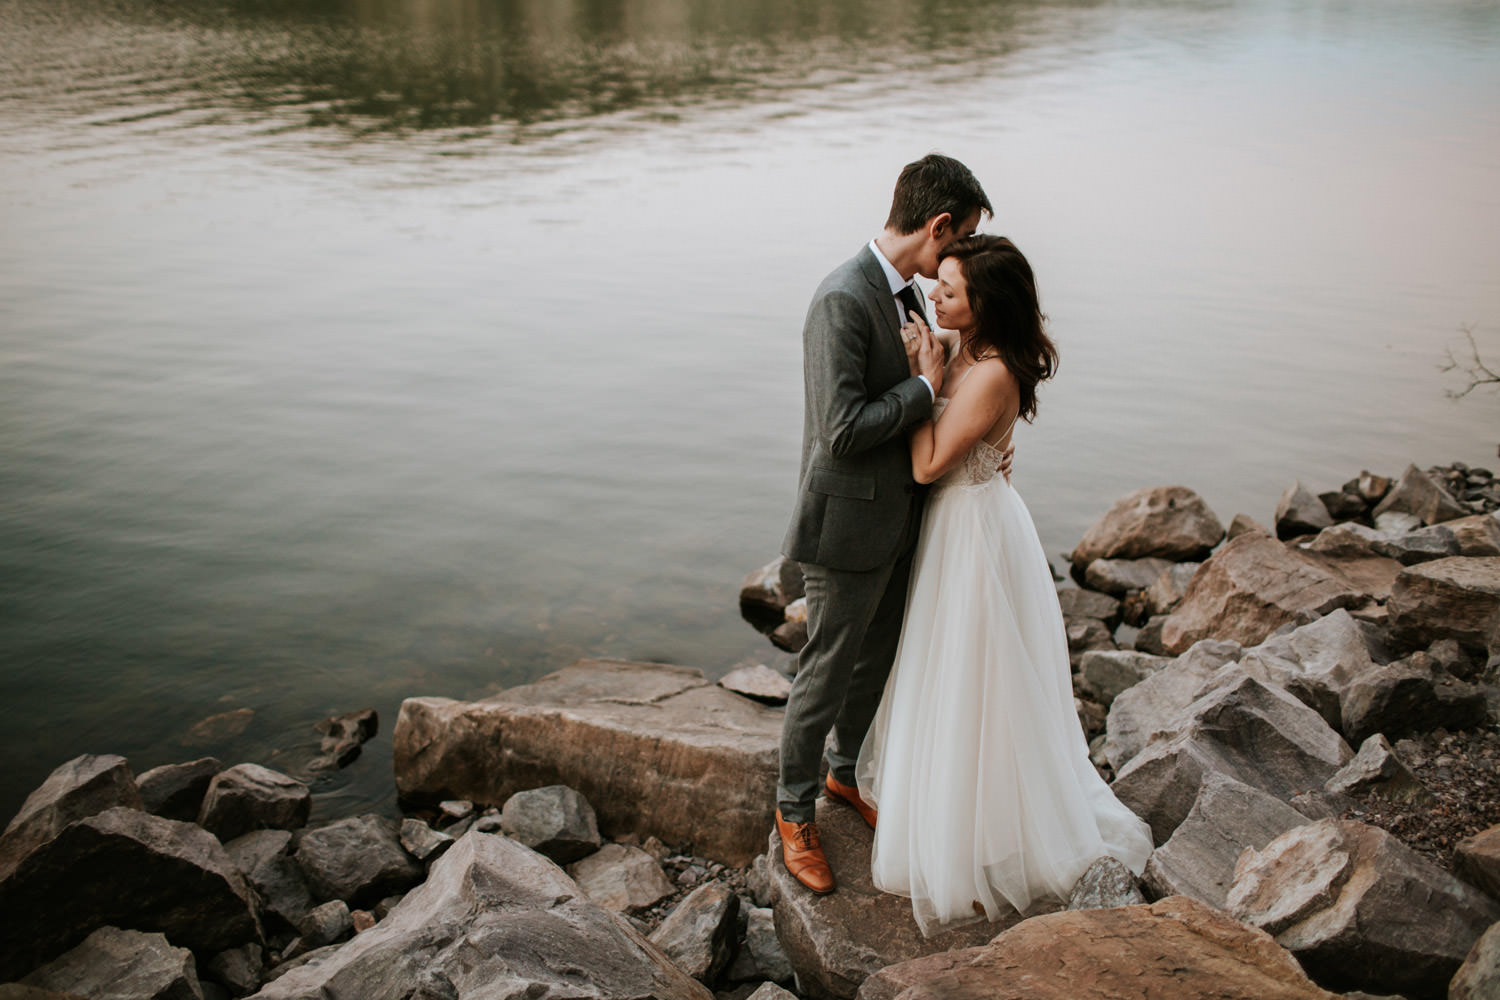 groom embraces the bride during the wedding at devil's lake state park